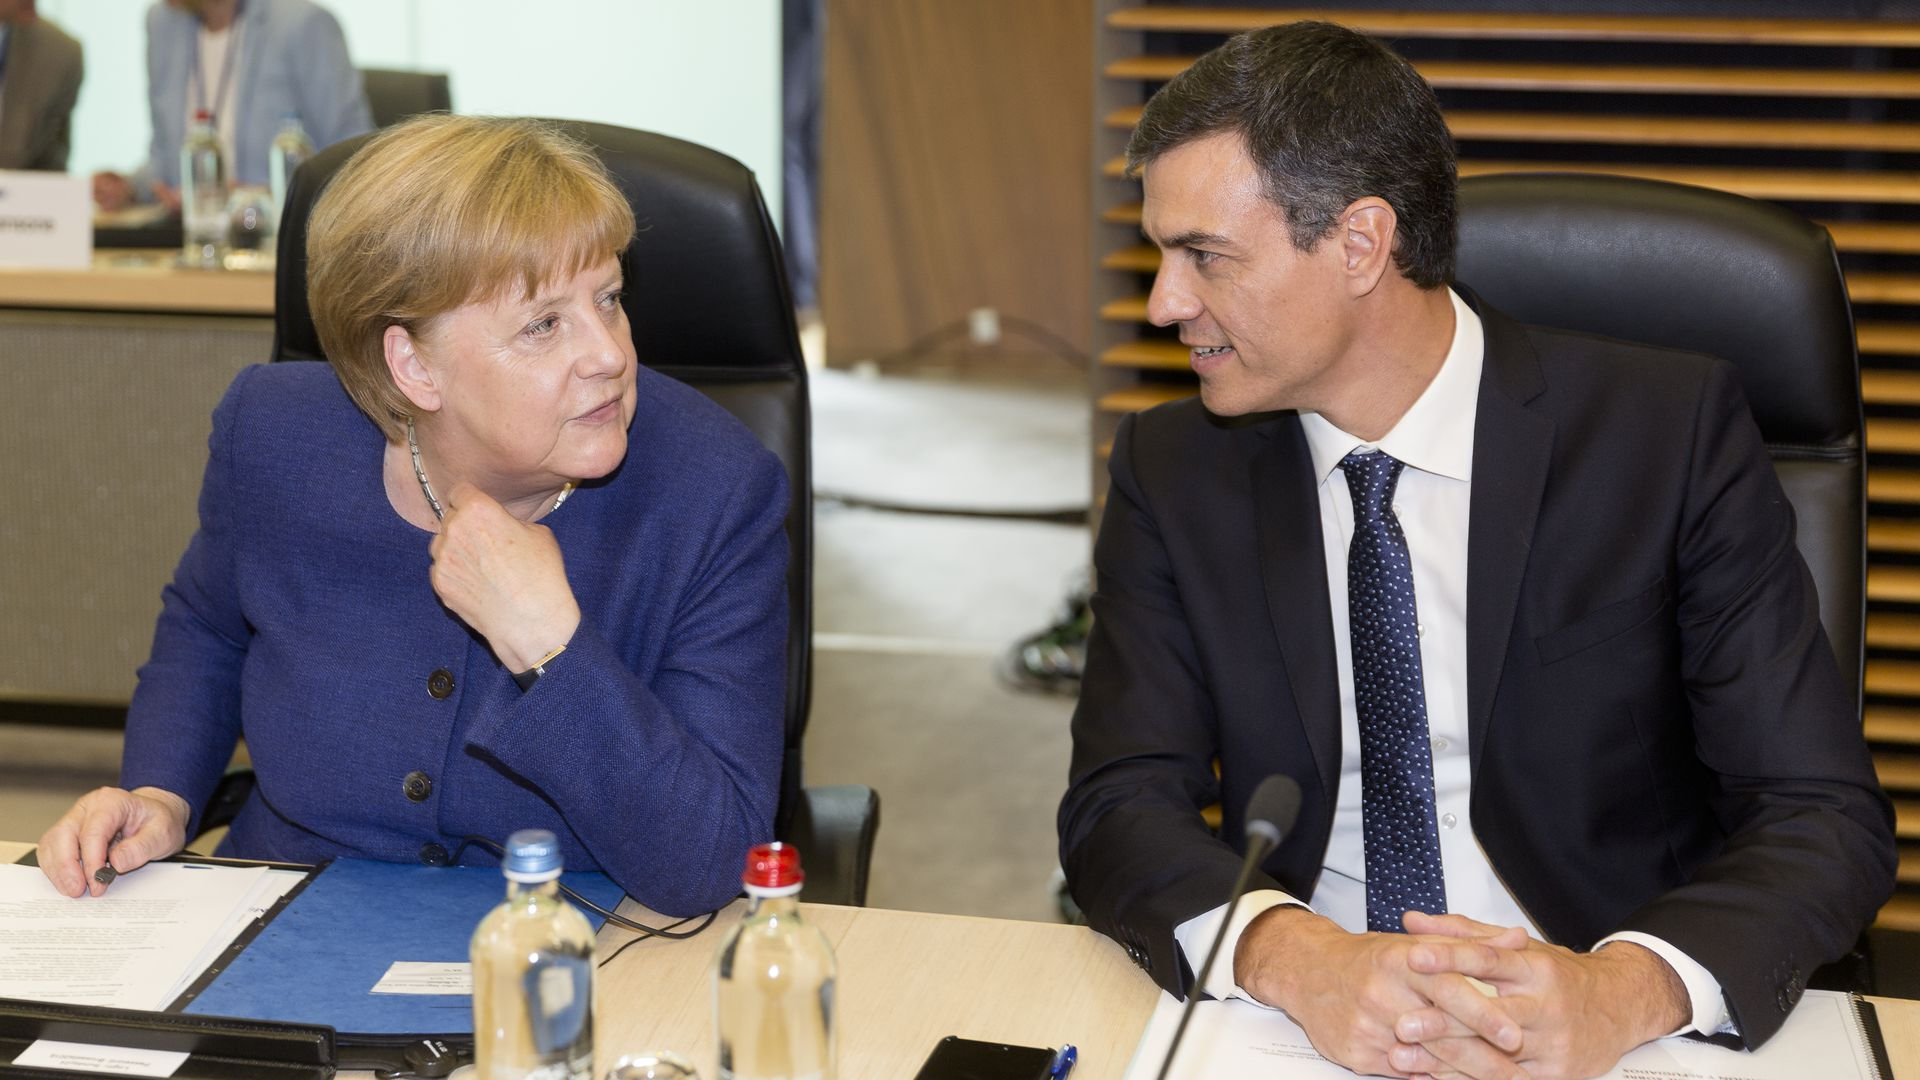 German Chancellor Angela Merkel and Spanish Prime Minister Pedro Sanchez at a meeting on migration and asylum issues in Brussels, Belgium. Photo: Thierry Monasse/Getty Images